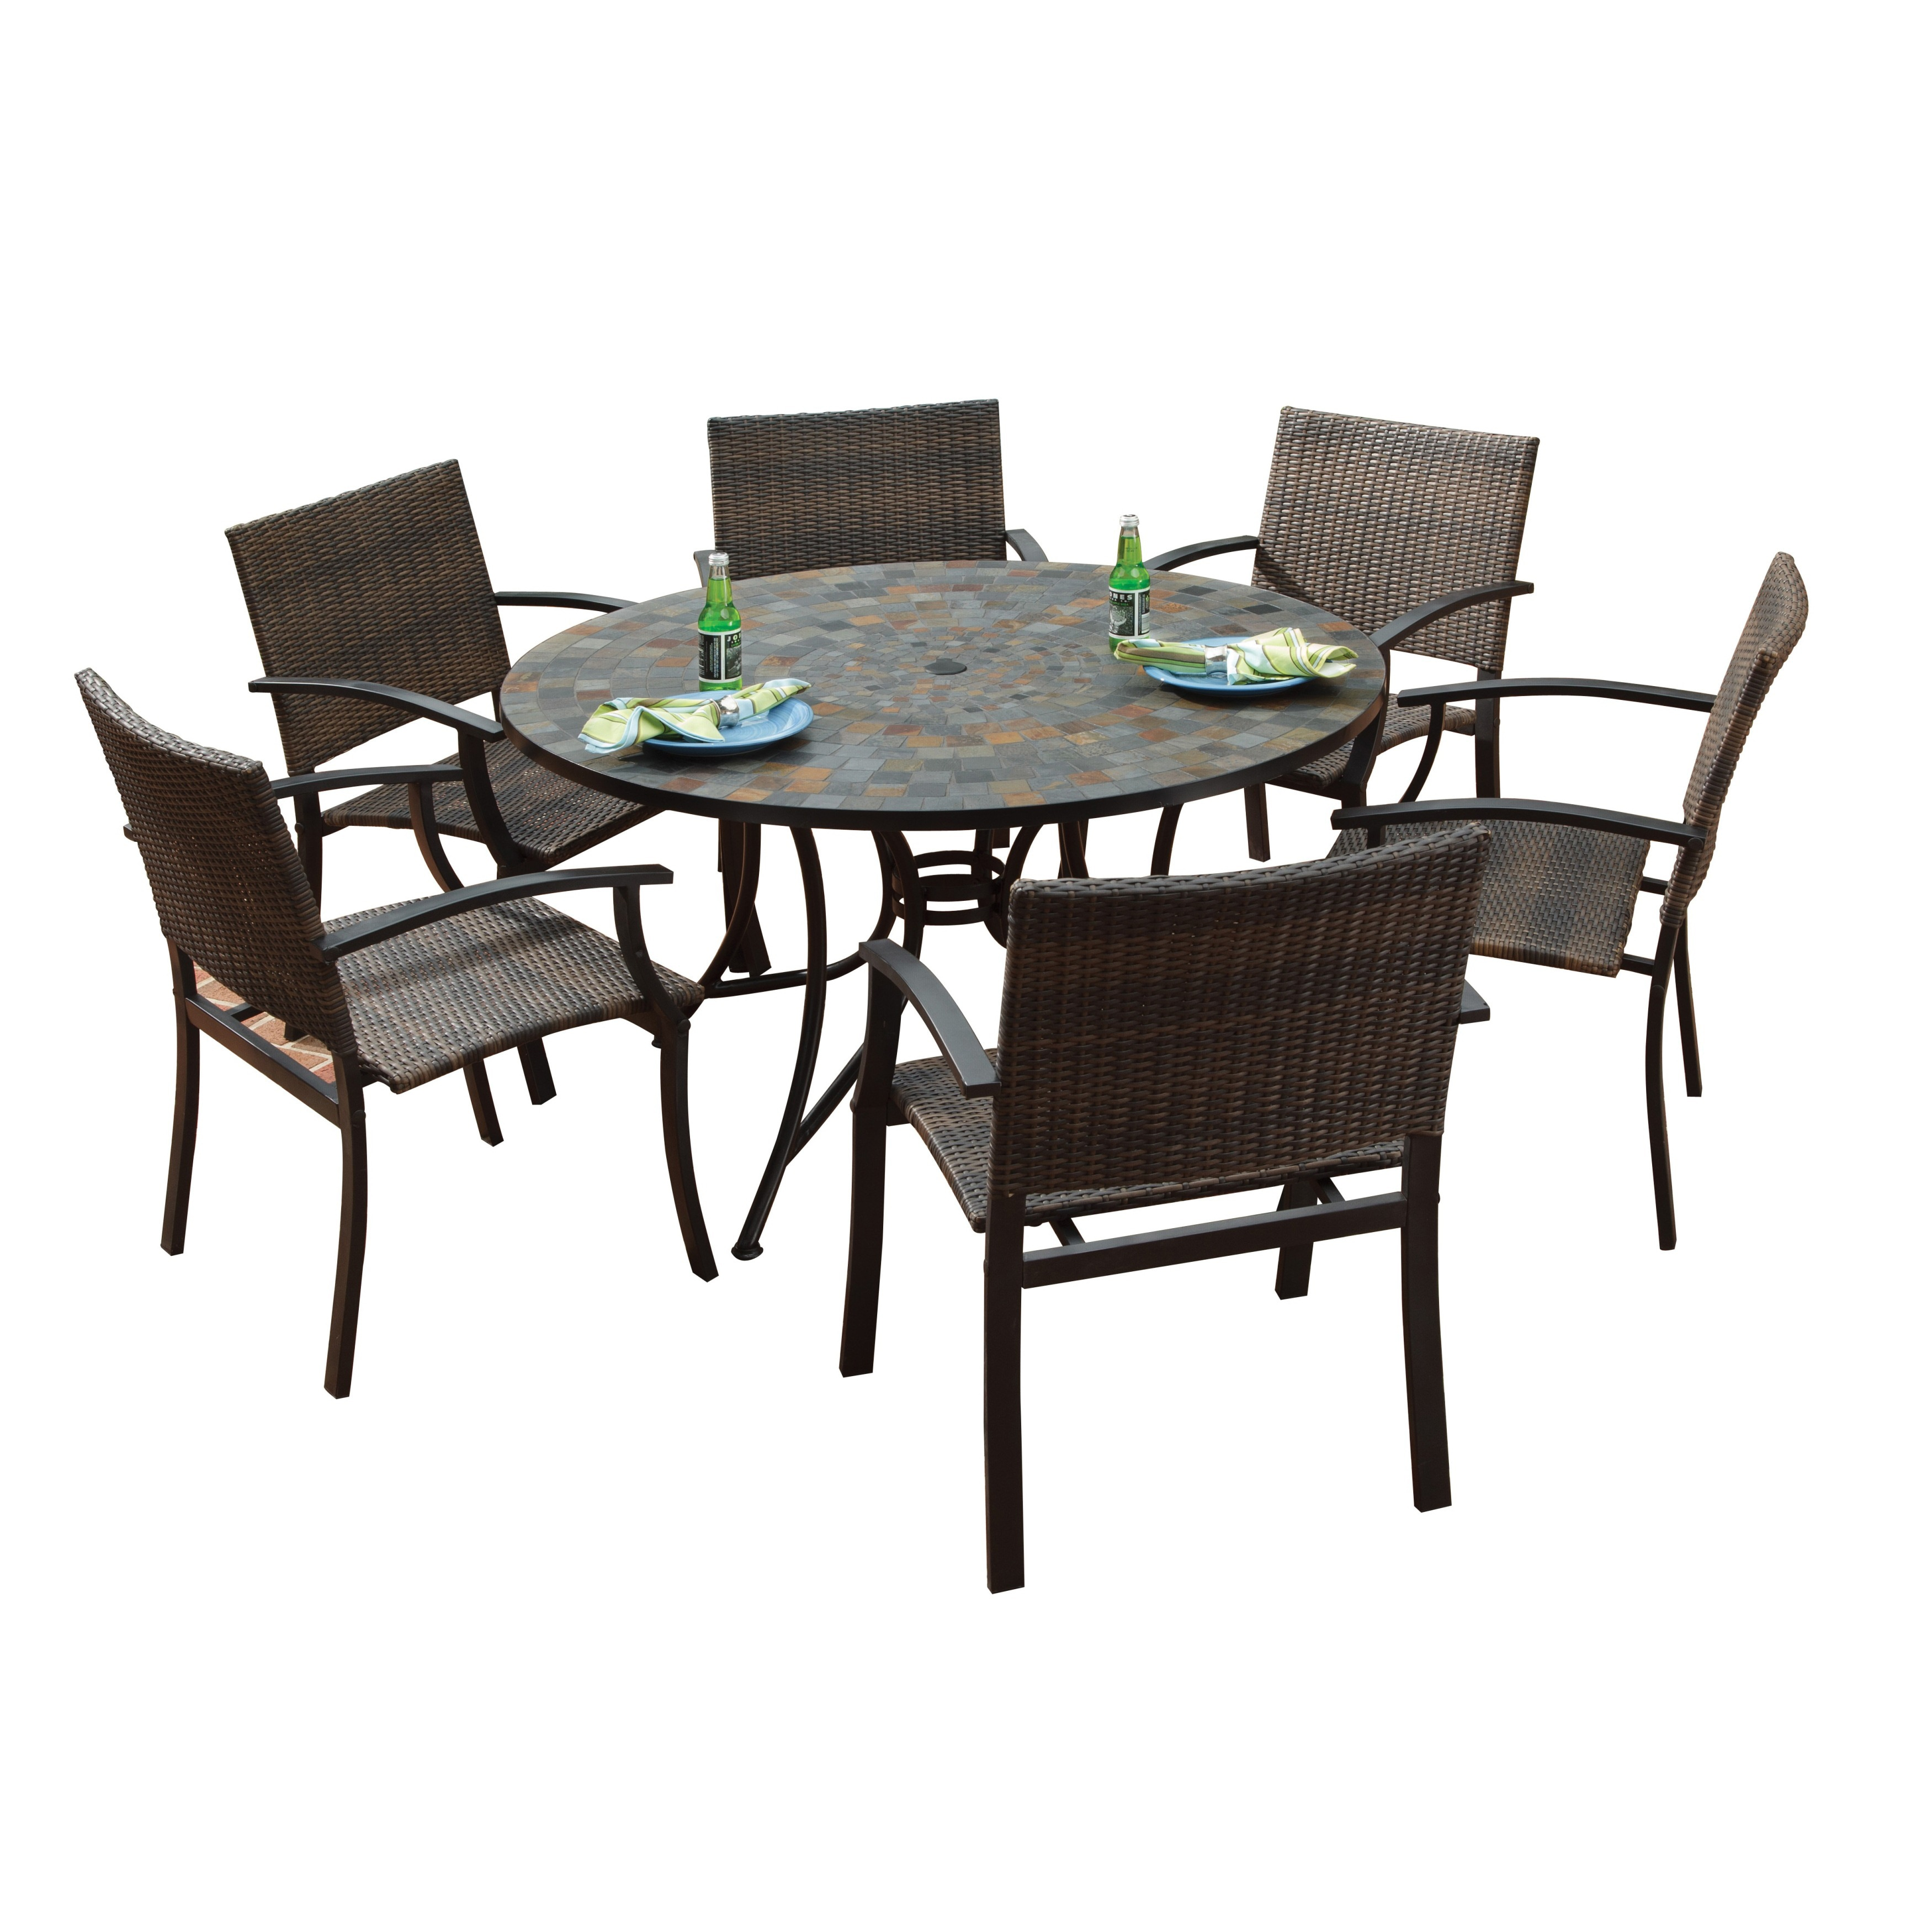 Stone Harbor Large Round Dining Table And Newport Arm Chairs 7-piece Outdoor Dining Set By Home Styles - Overstock - 6695041